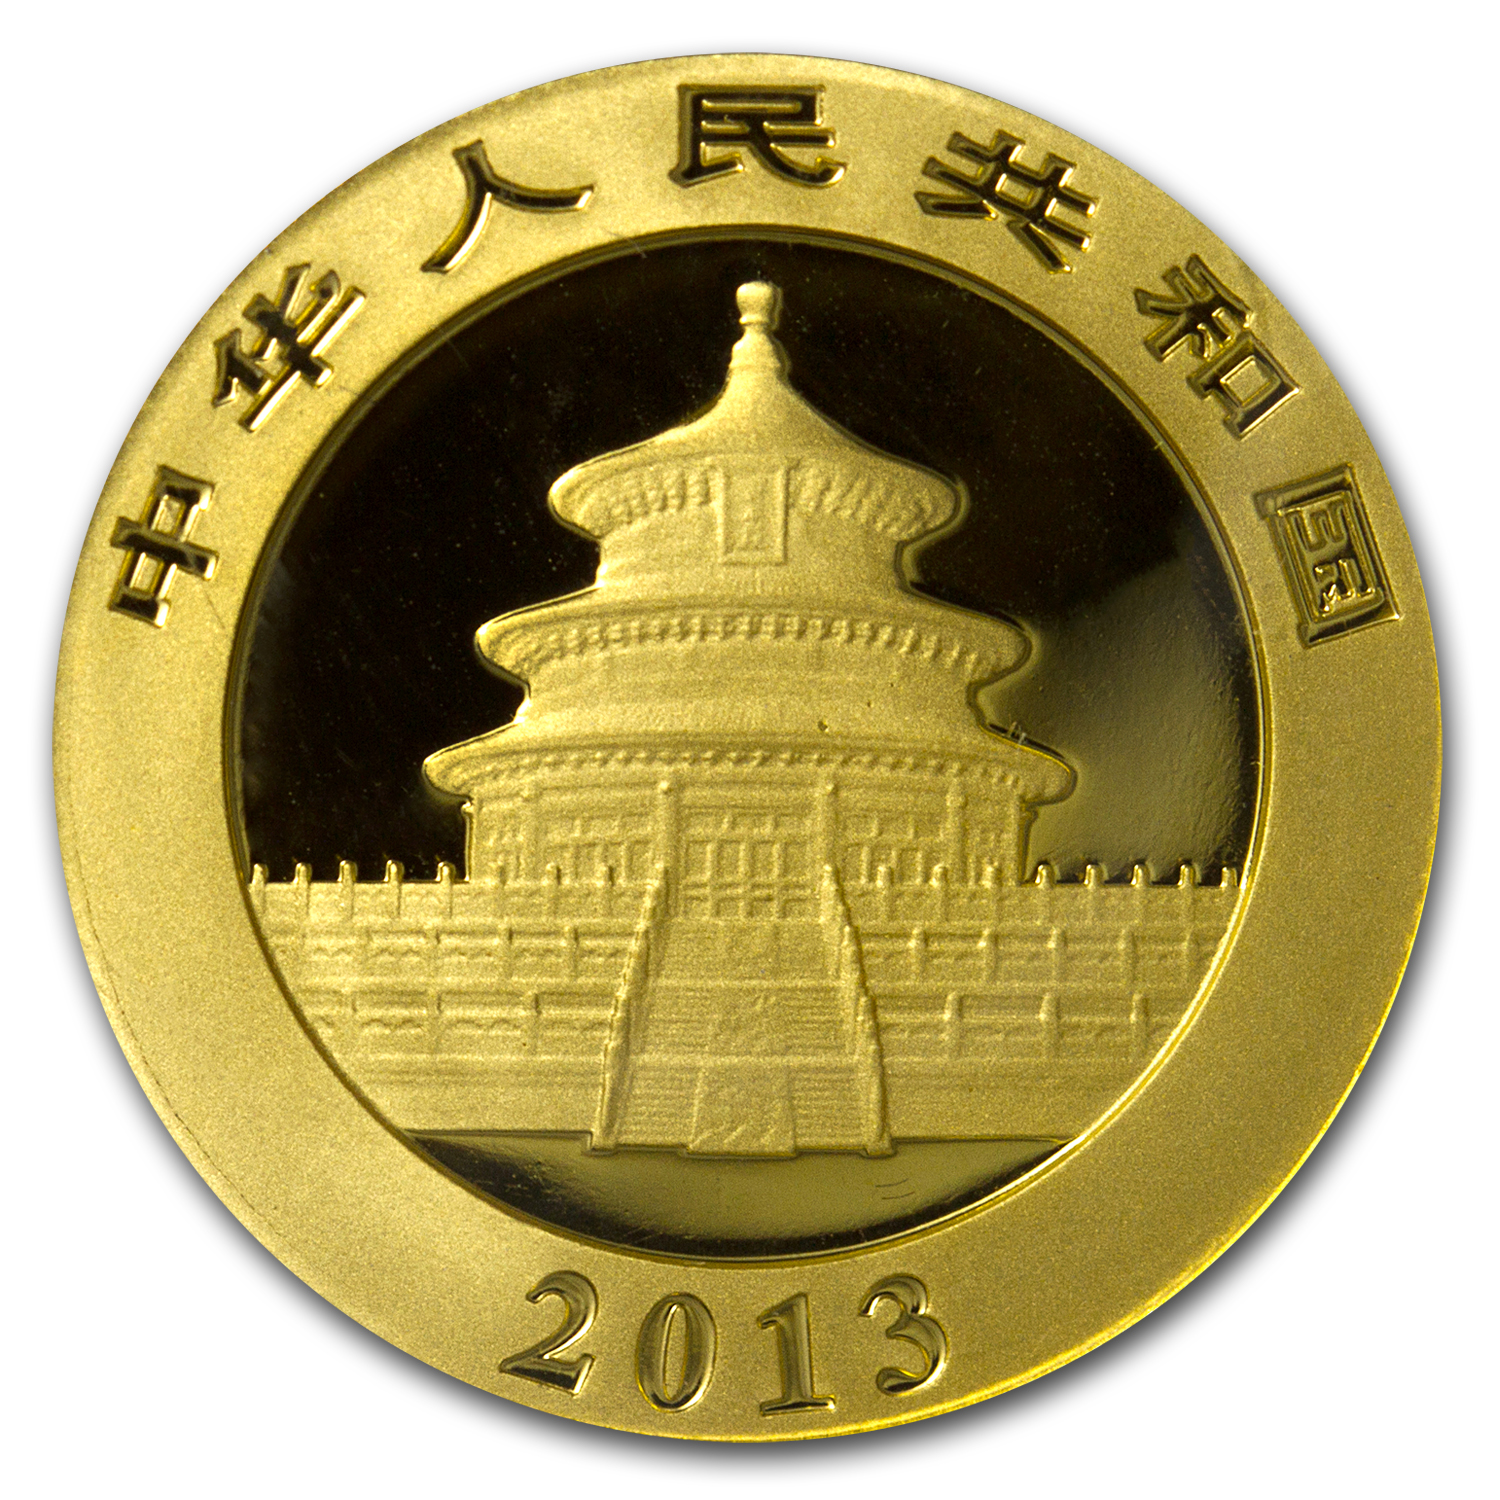 2013 1/10 oz Gold Chinese Panda BU (Sealed)